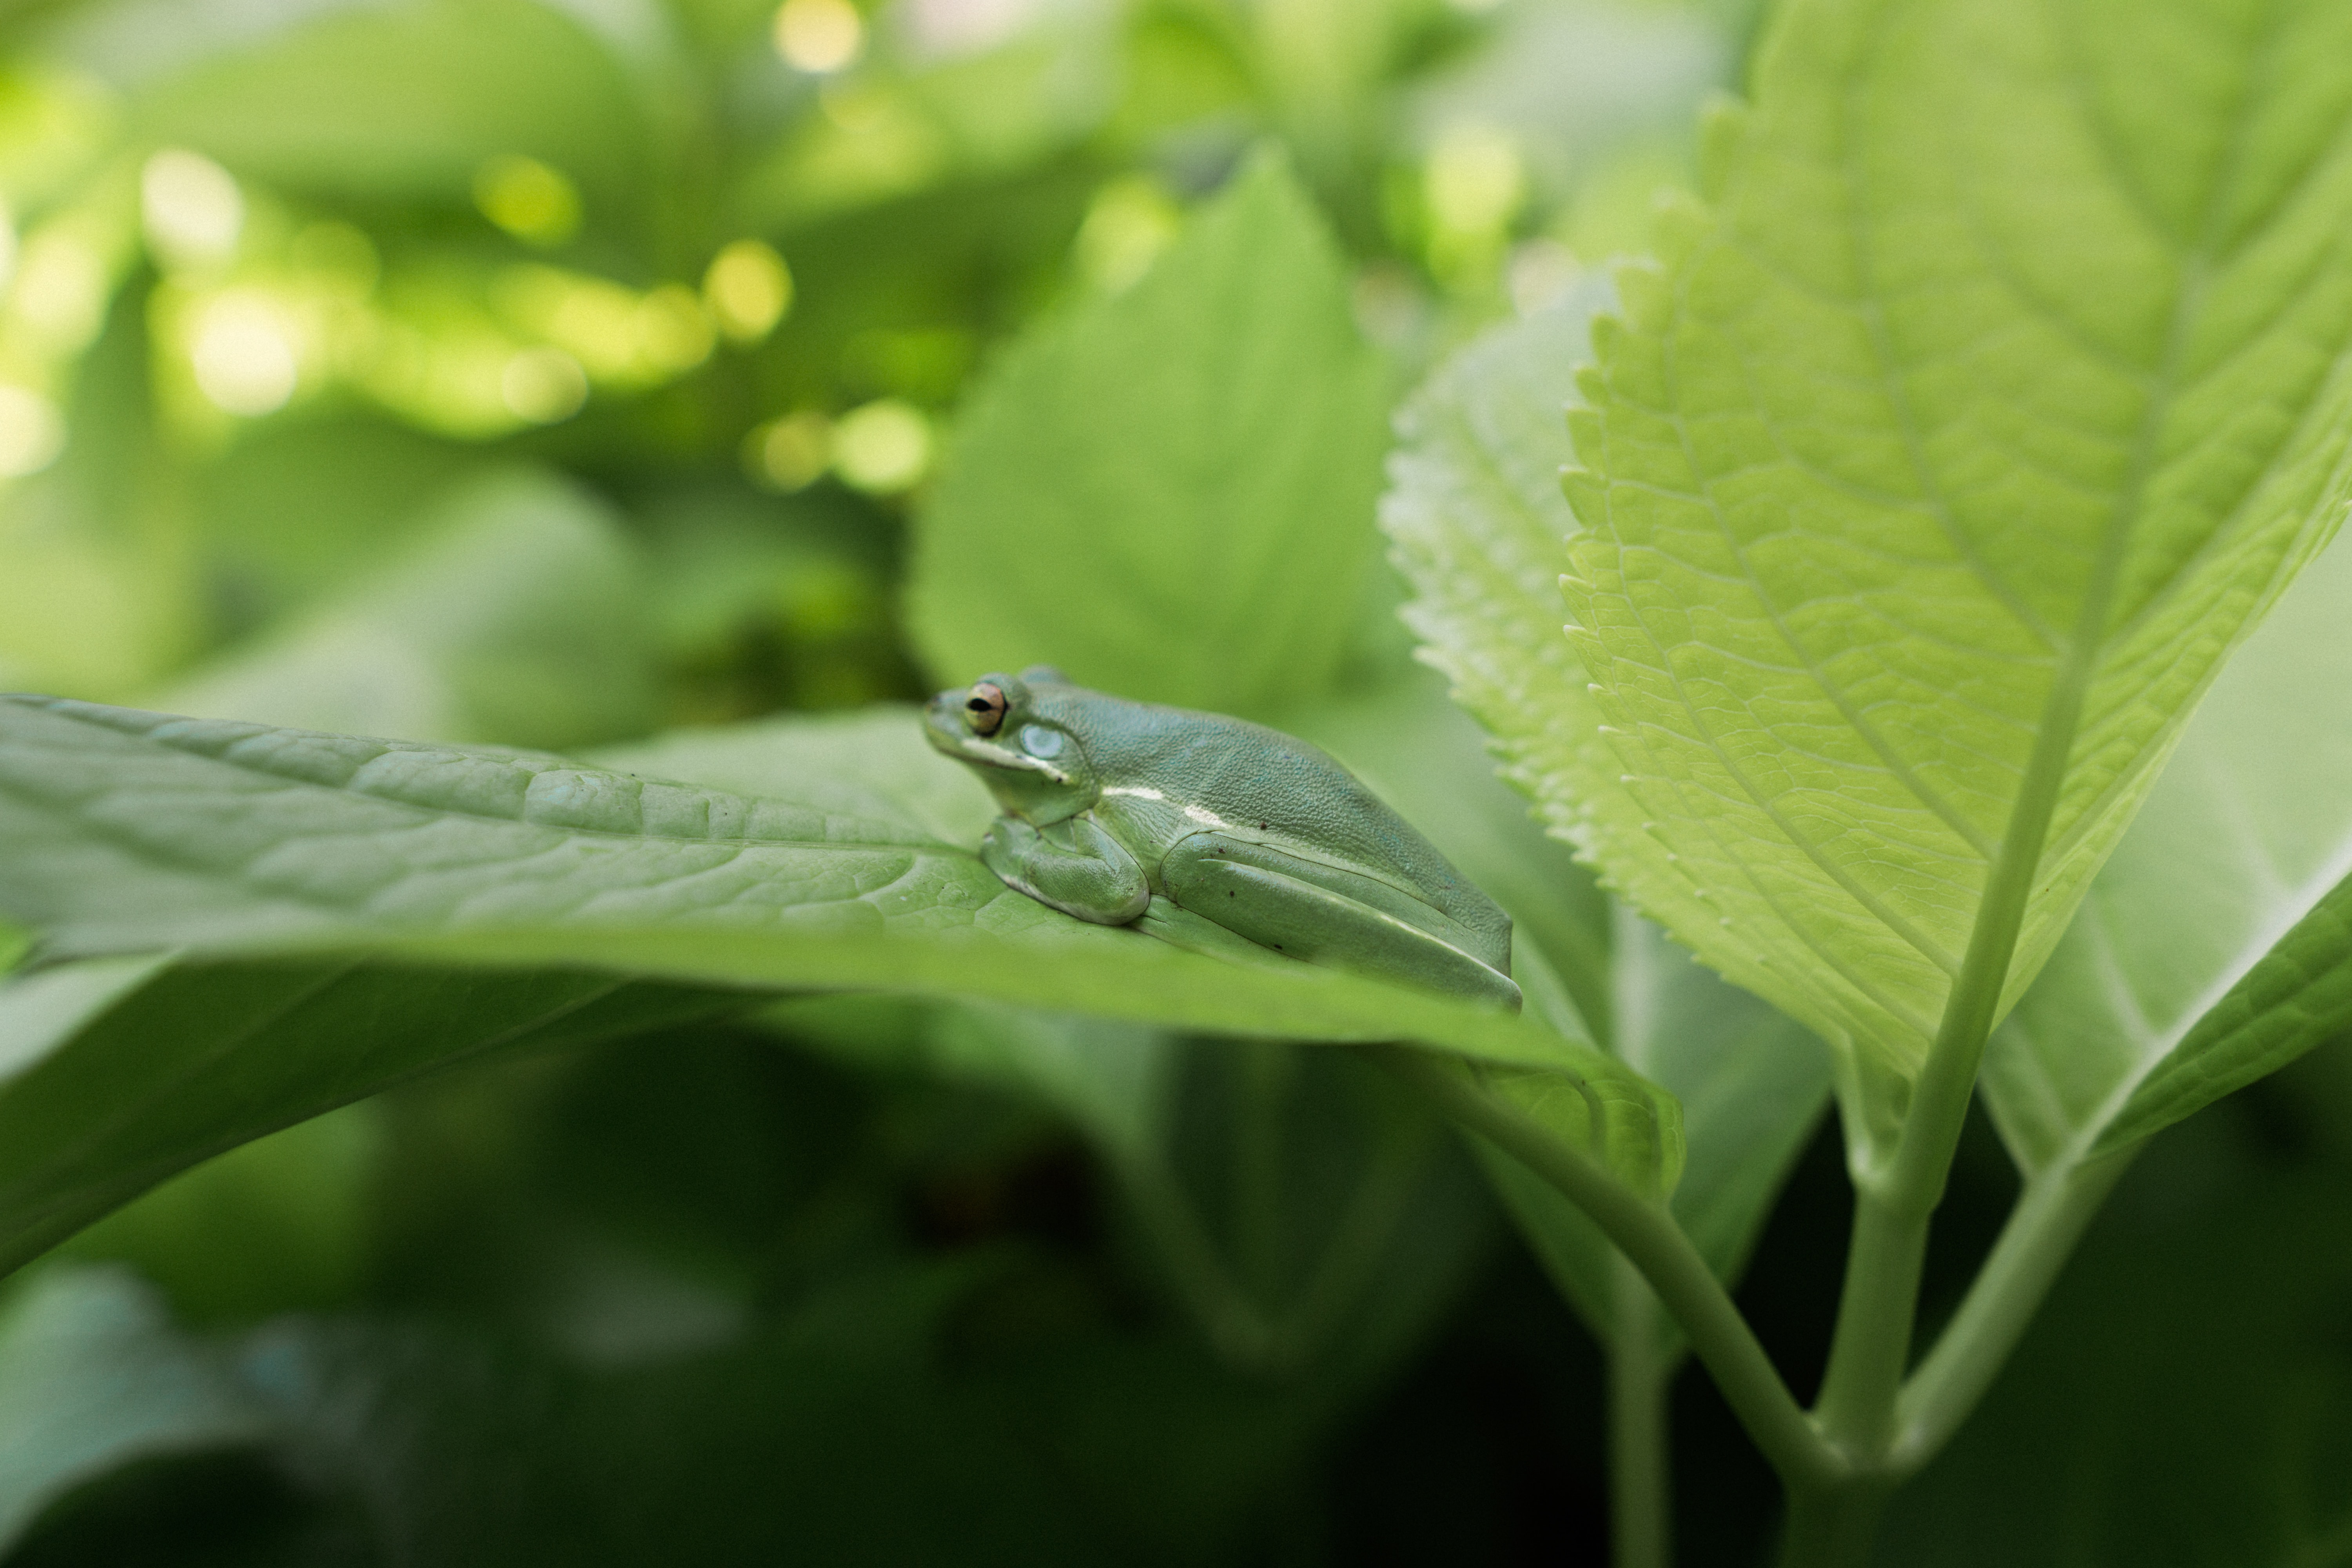 closeup photo of green frog on leaf